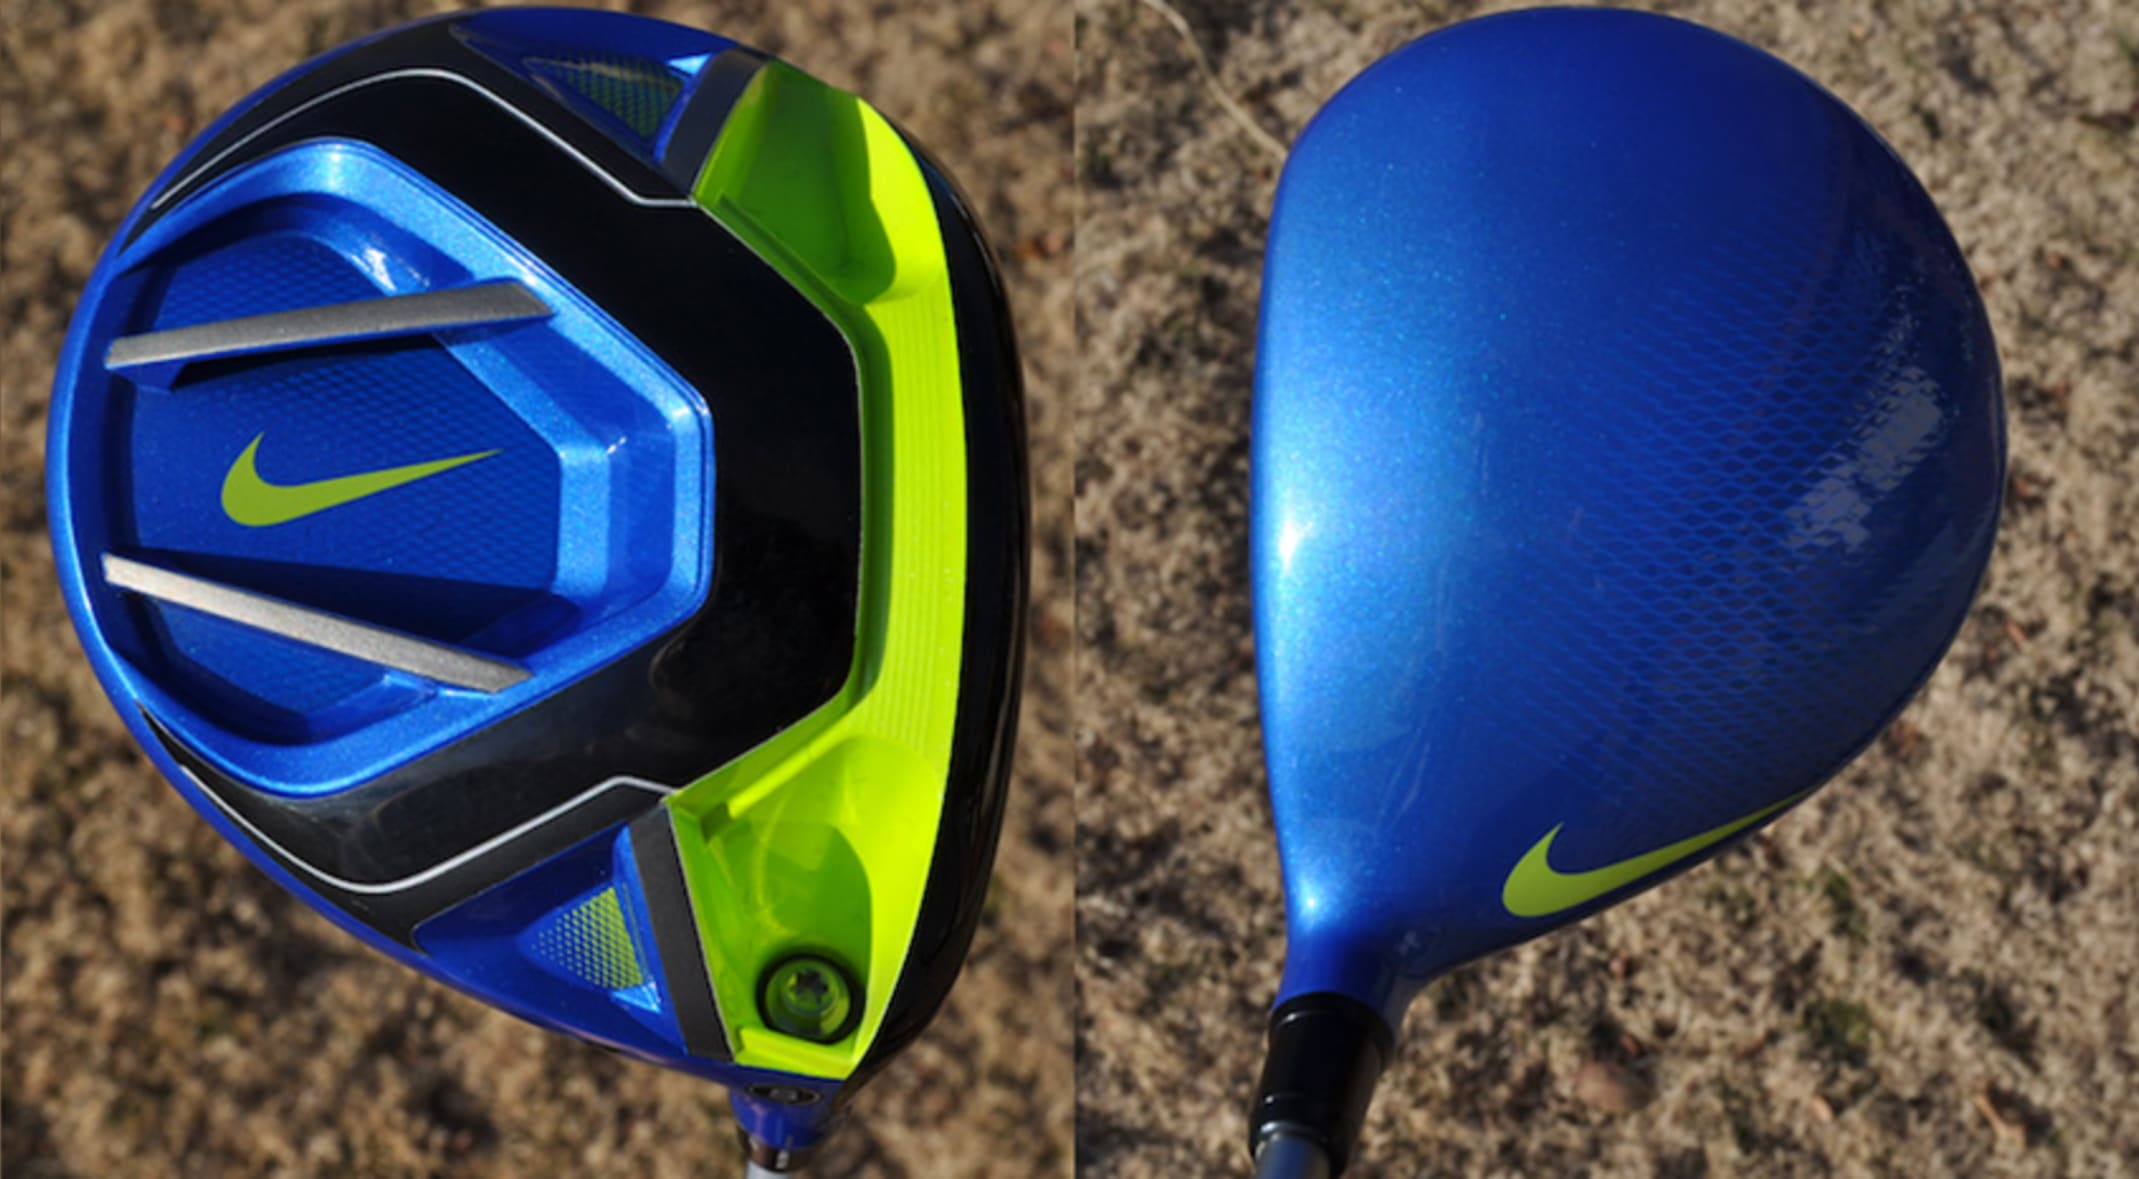 The Nike Vapor Fly Pro driver 02f6a31f2